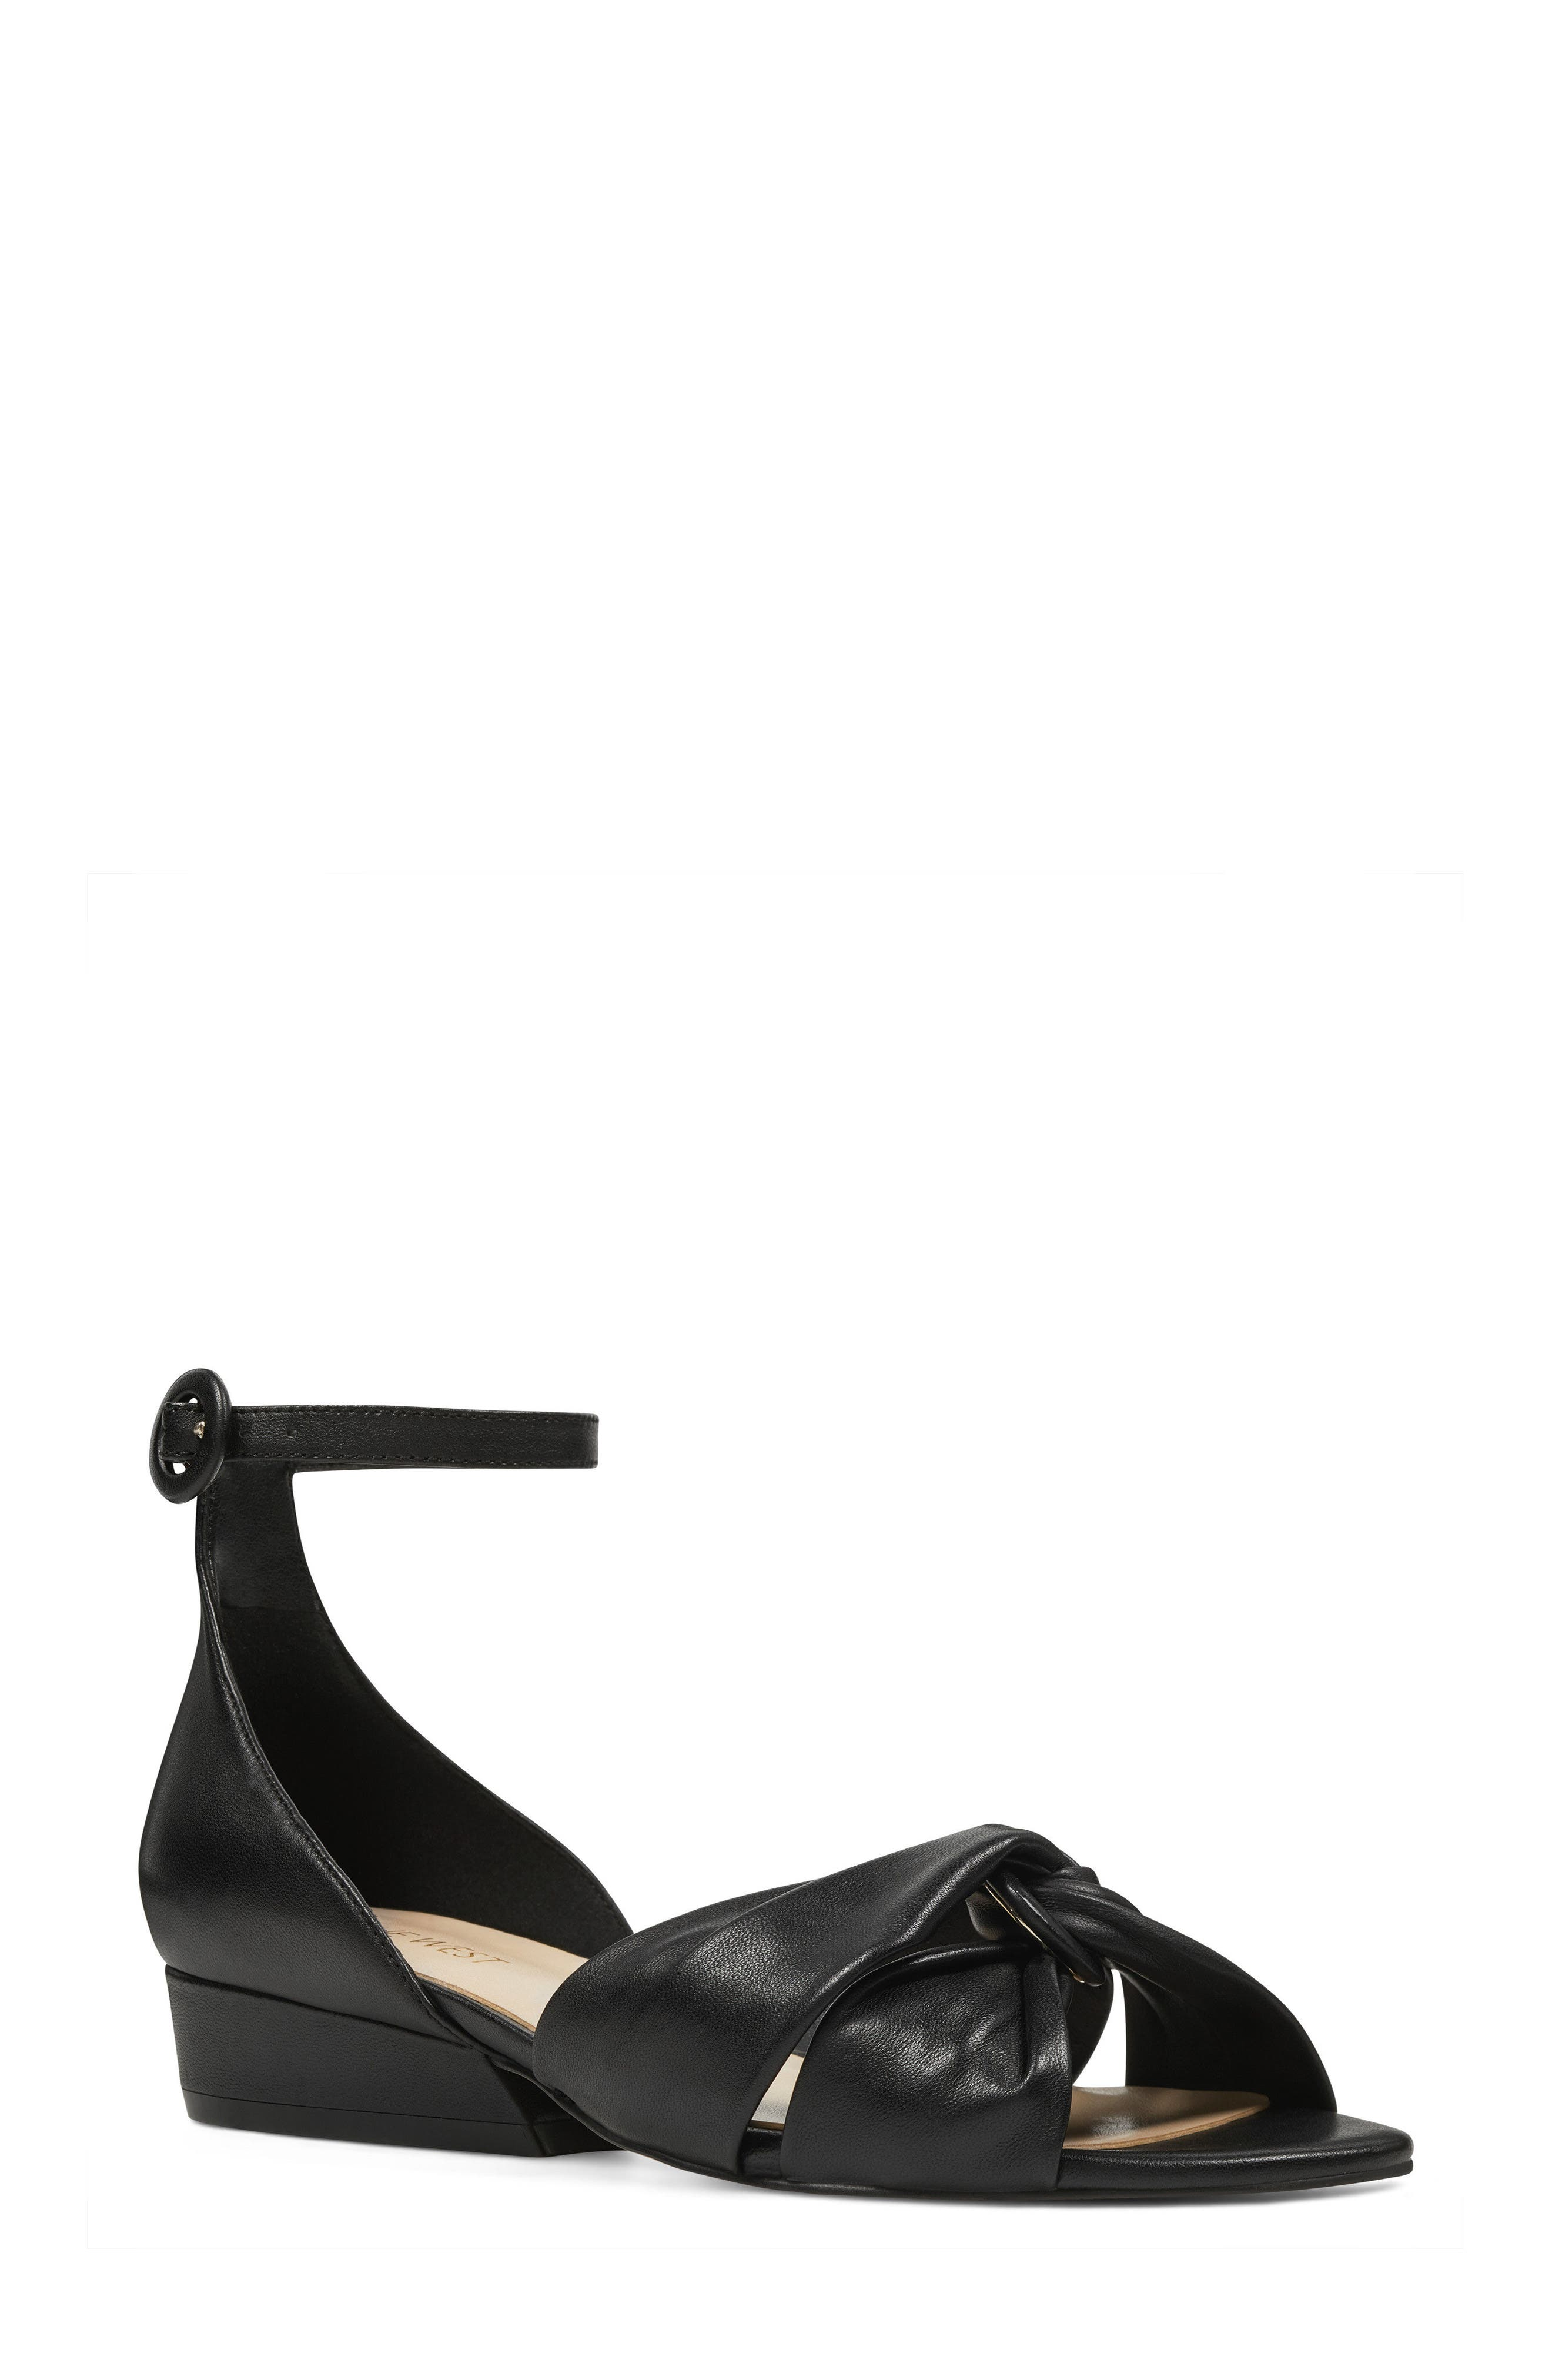 Lumsi Ankle Strap Sandal,                         Main,                         color, Black Leather